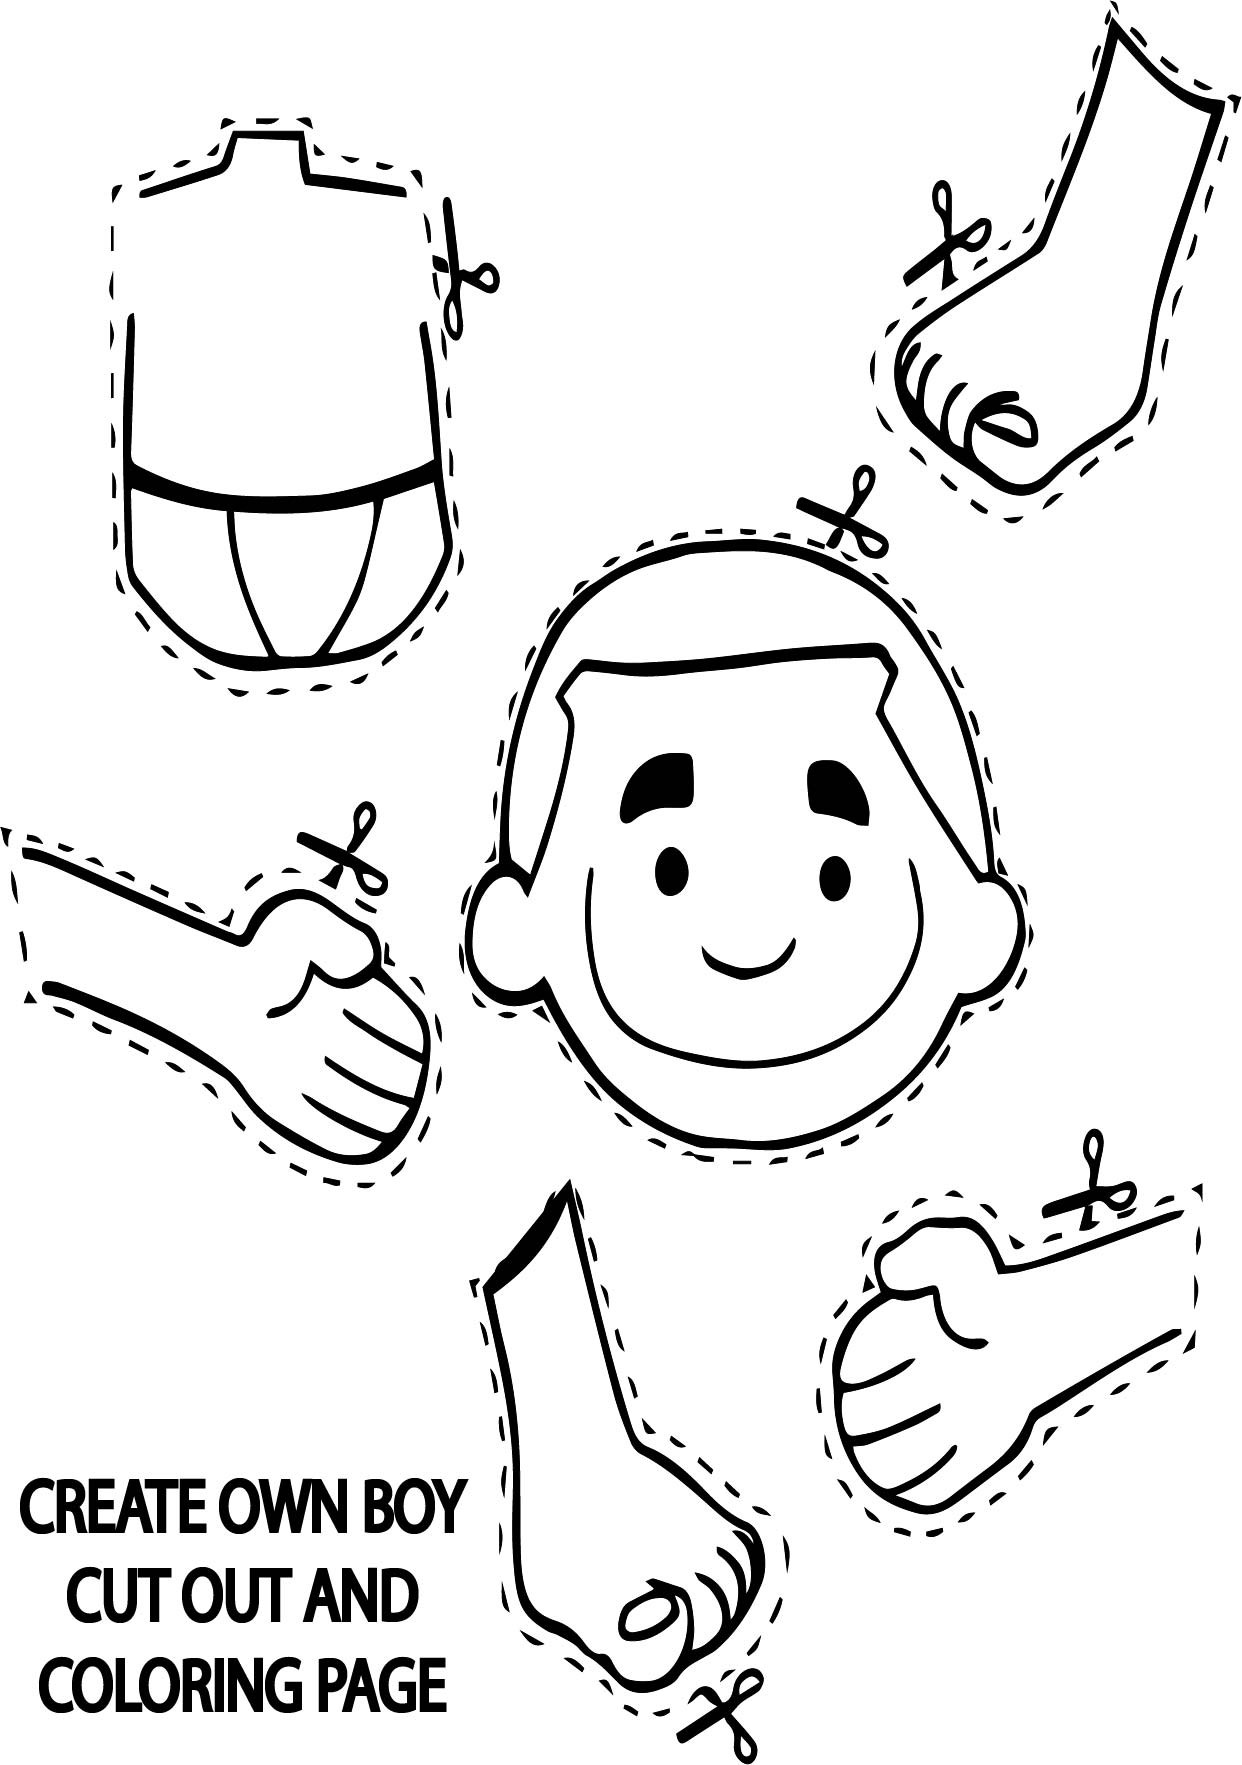 Best ideas about Make Coloring Book Pages . Save or Pin Create Own Boy Cut Out Coloring Page Now.